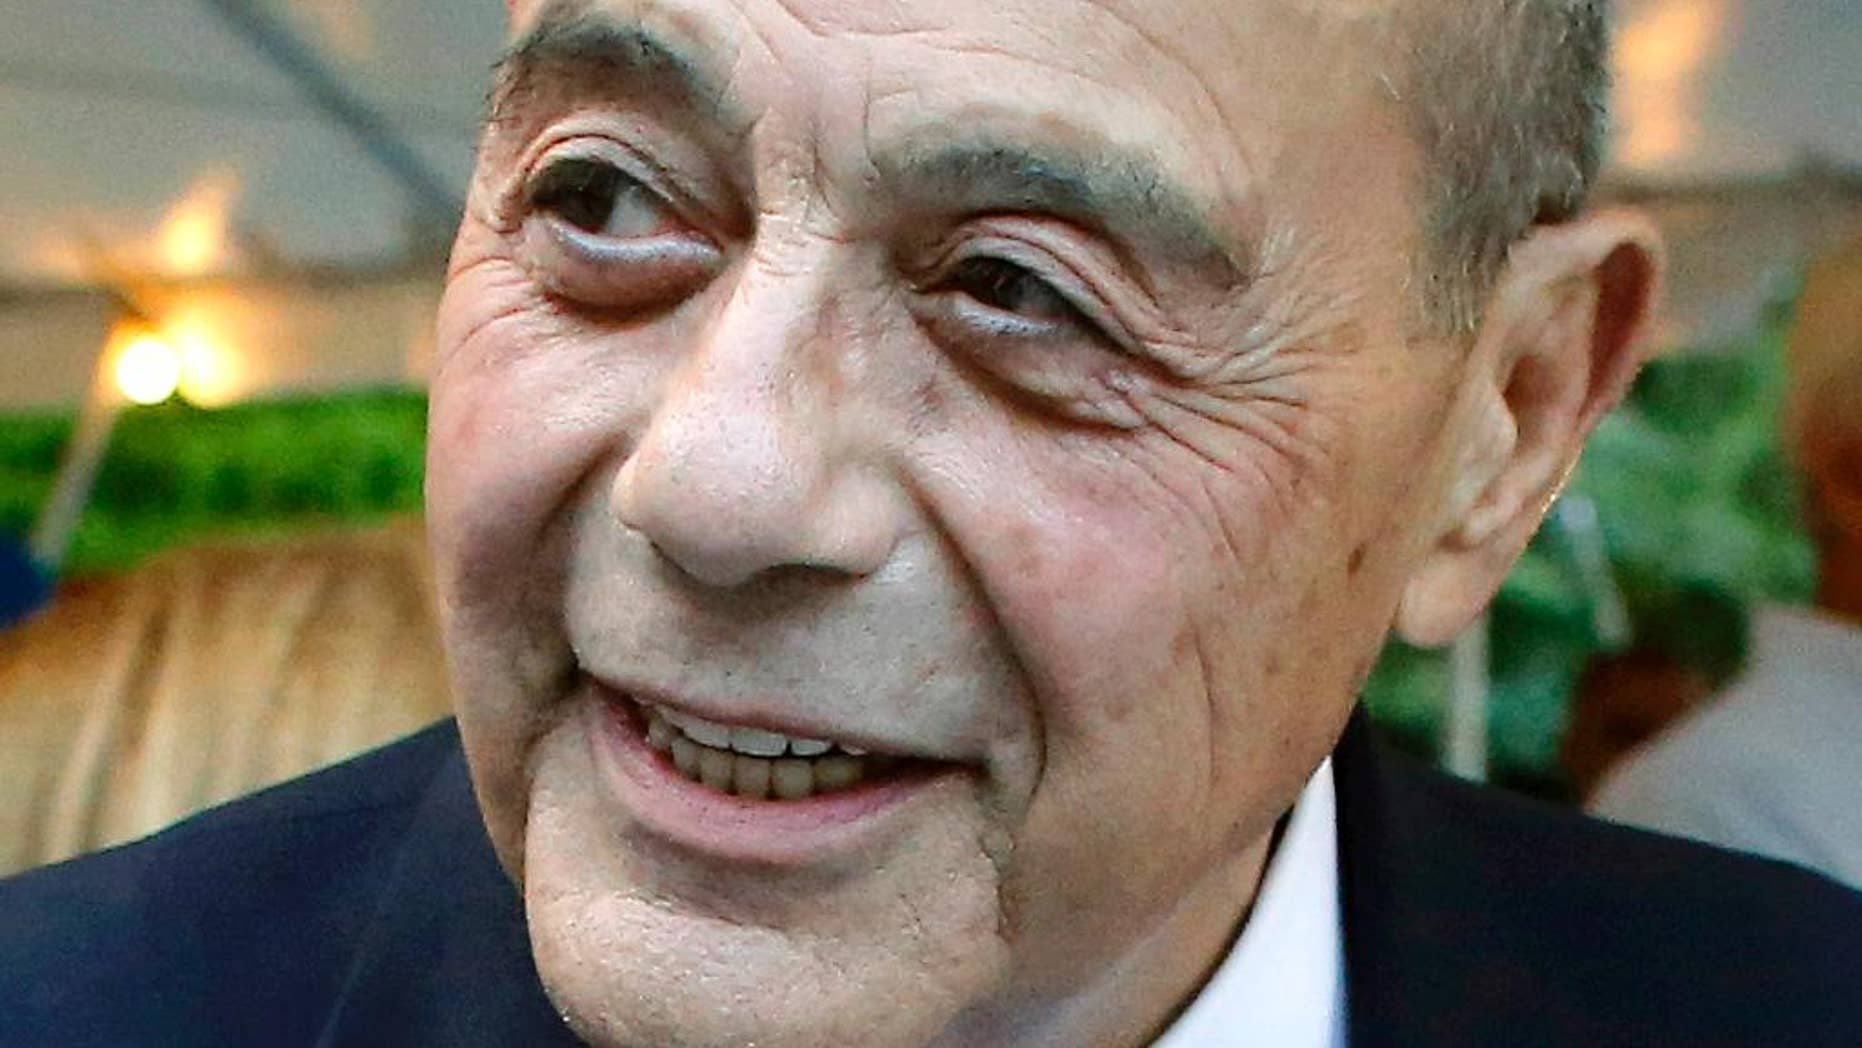 FILE - This Sept. 10, 2014, file photo shows former Providence, R.I., Mayor Buddy Cianci, who died at age 74 on Jan. 28, 2016, in Providence.  Cianci held office for more than 21 years, but was forced from his seat twice due to felonies. He left behind several ventures, including his self-branded pasta sauce, a scholarship fund and plans for a library to house 40 years' worth of memorabilia. (AP Photo/Steven Senne, File)